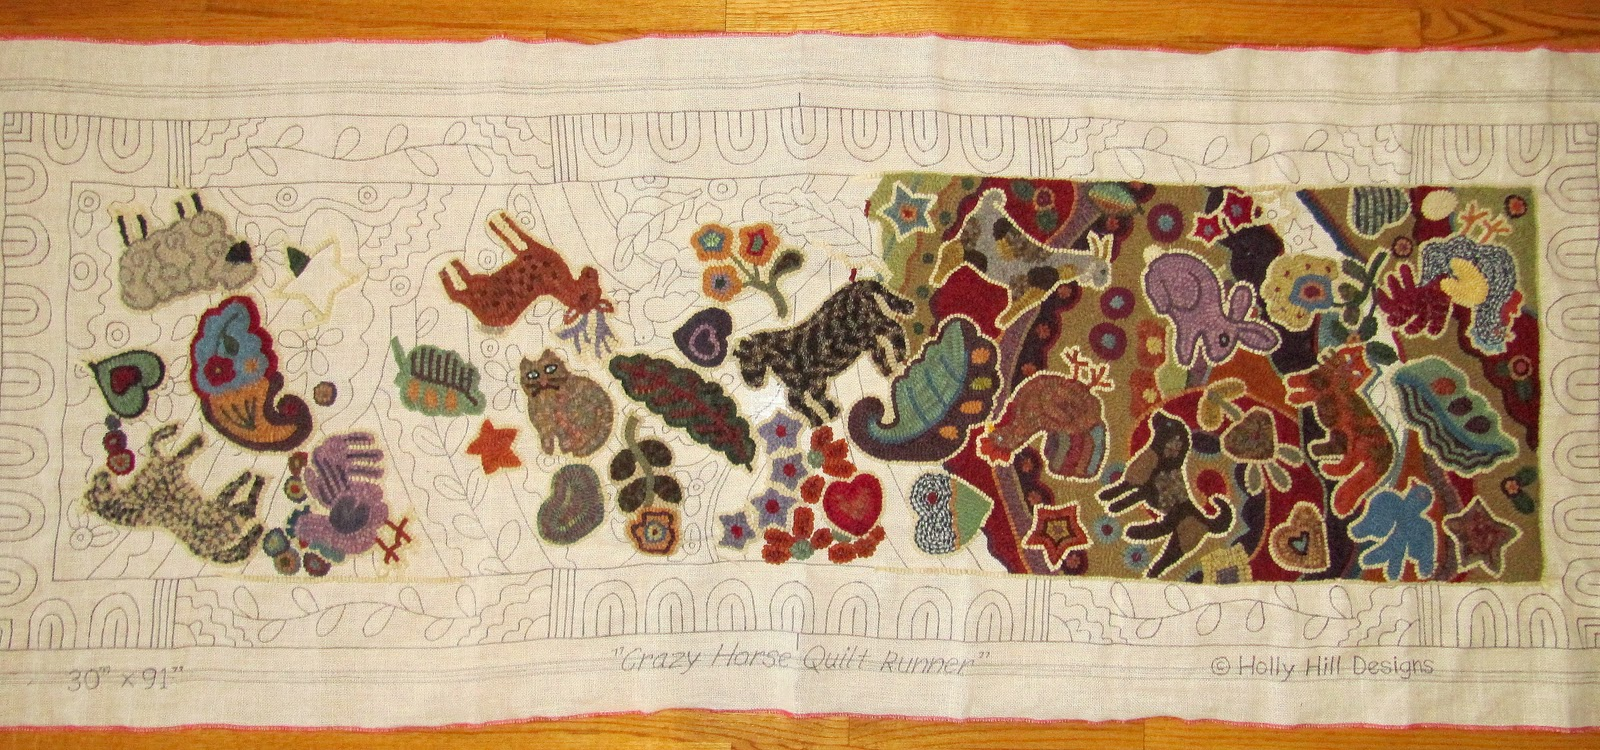 Amy's Dusty Trail: Crazy Horse Quilt